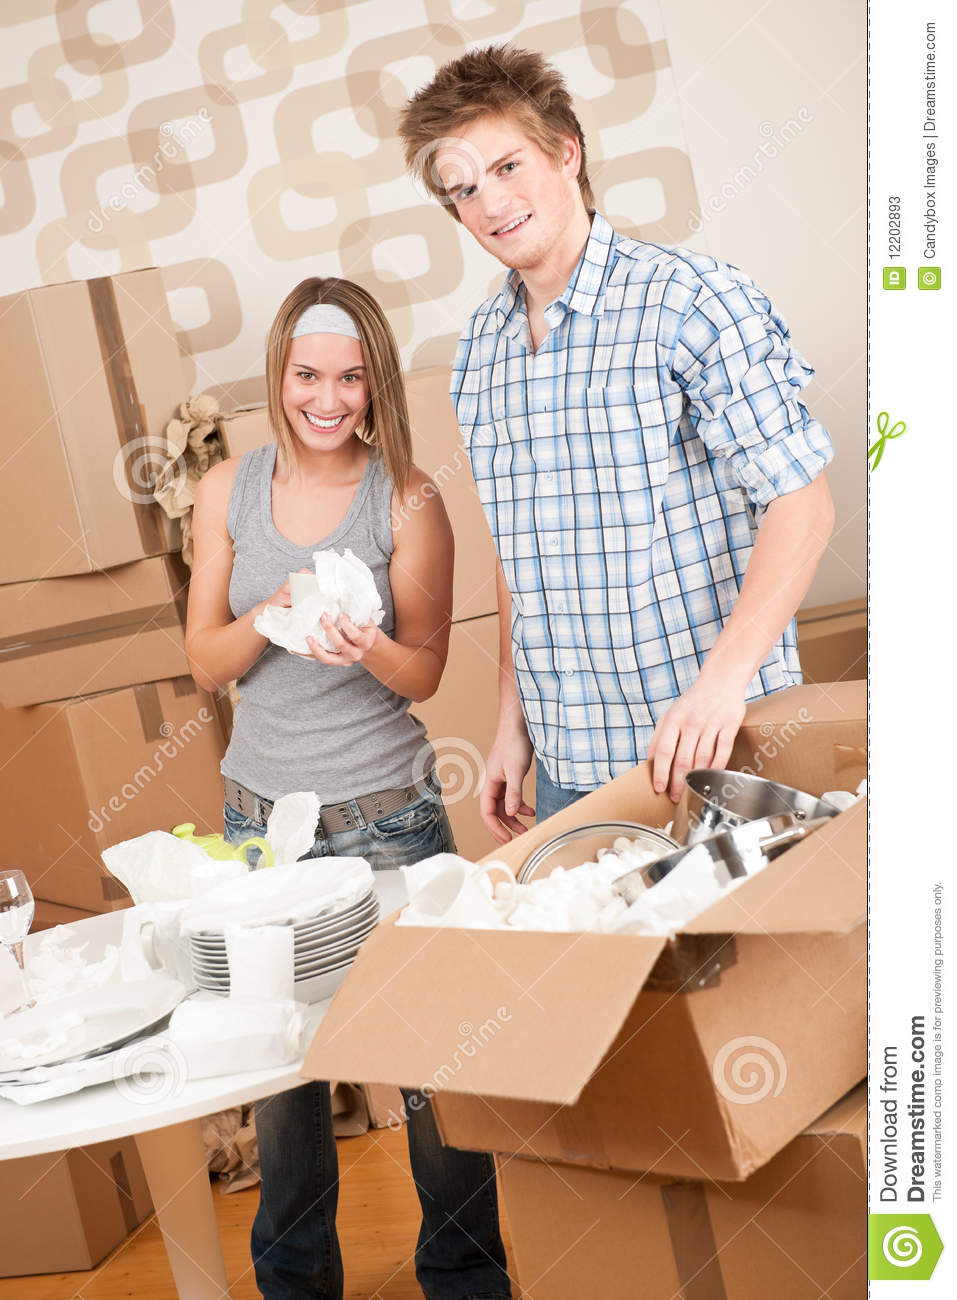 Moving house young couple unpacking dishes stock photos image 12202893 - Young couple modern homes ...